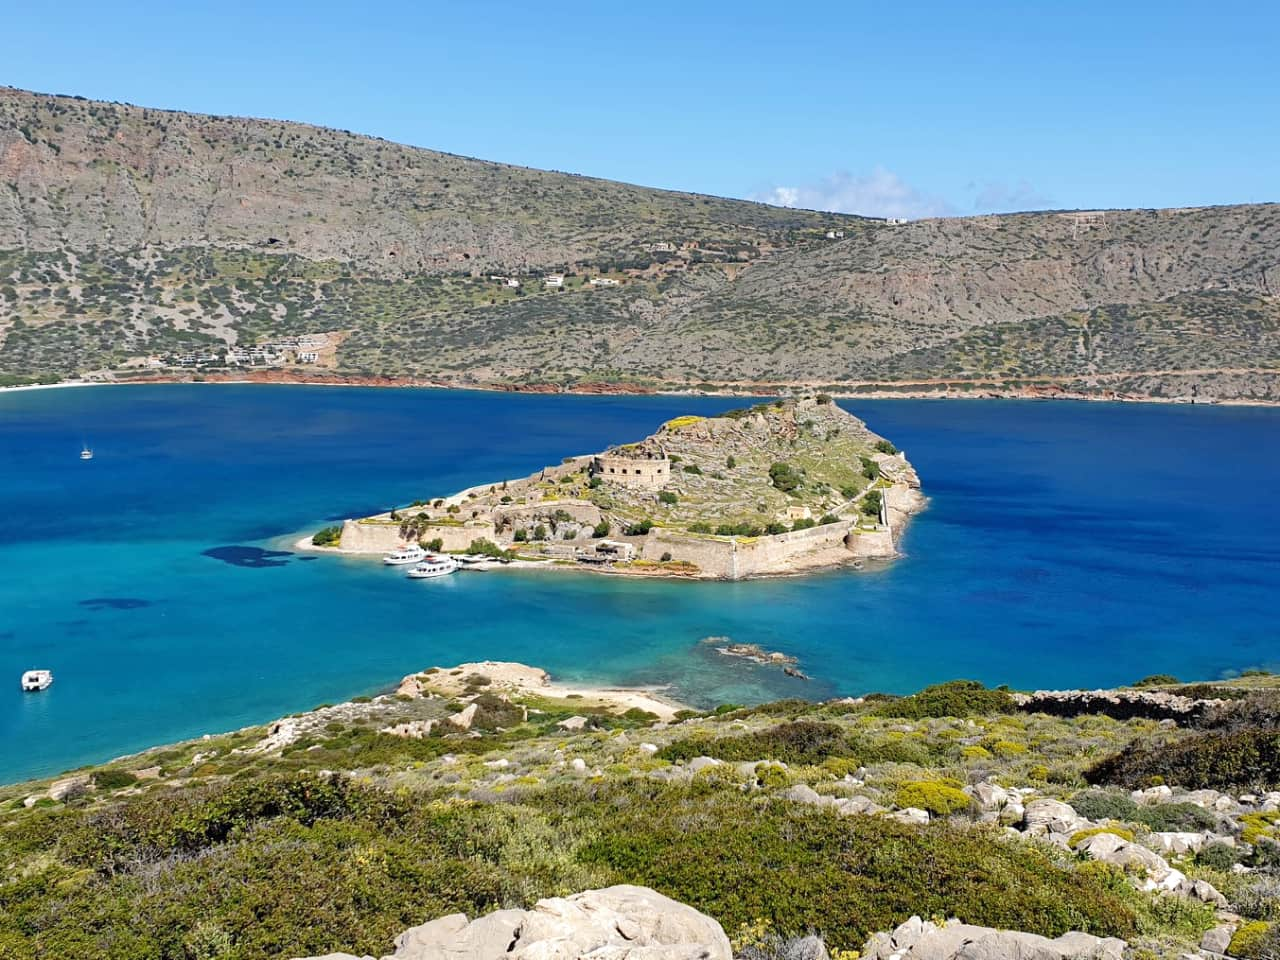 Afternoon Yacht Cruise to Kolokitha Island Enjoying The Sunset, boat trips elounda village, best speedboat tirps spinalonga elounda, best activities elounda village, spinaloga sunset boat trip, kolokitha elounda boat trip lunch, best boat trip elounda village